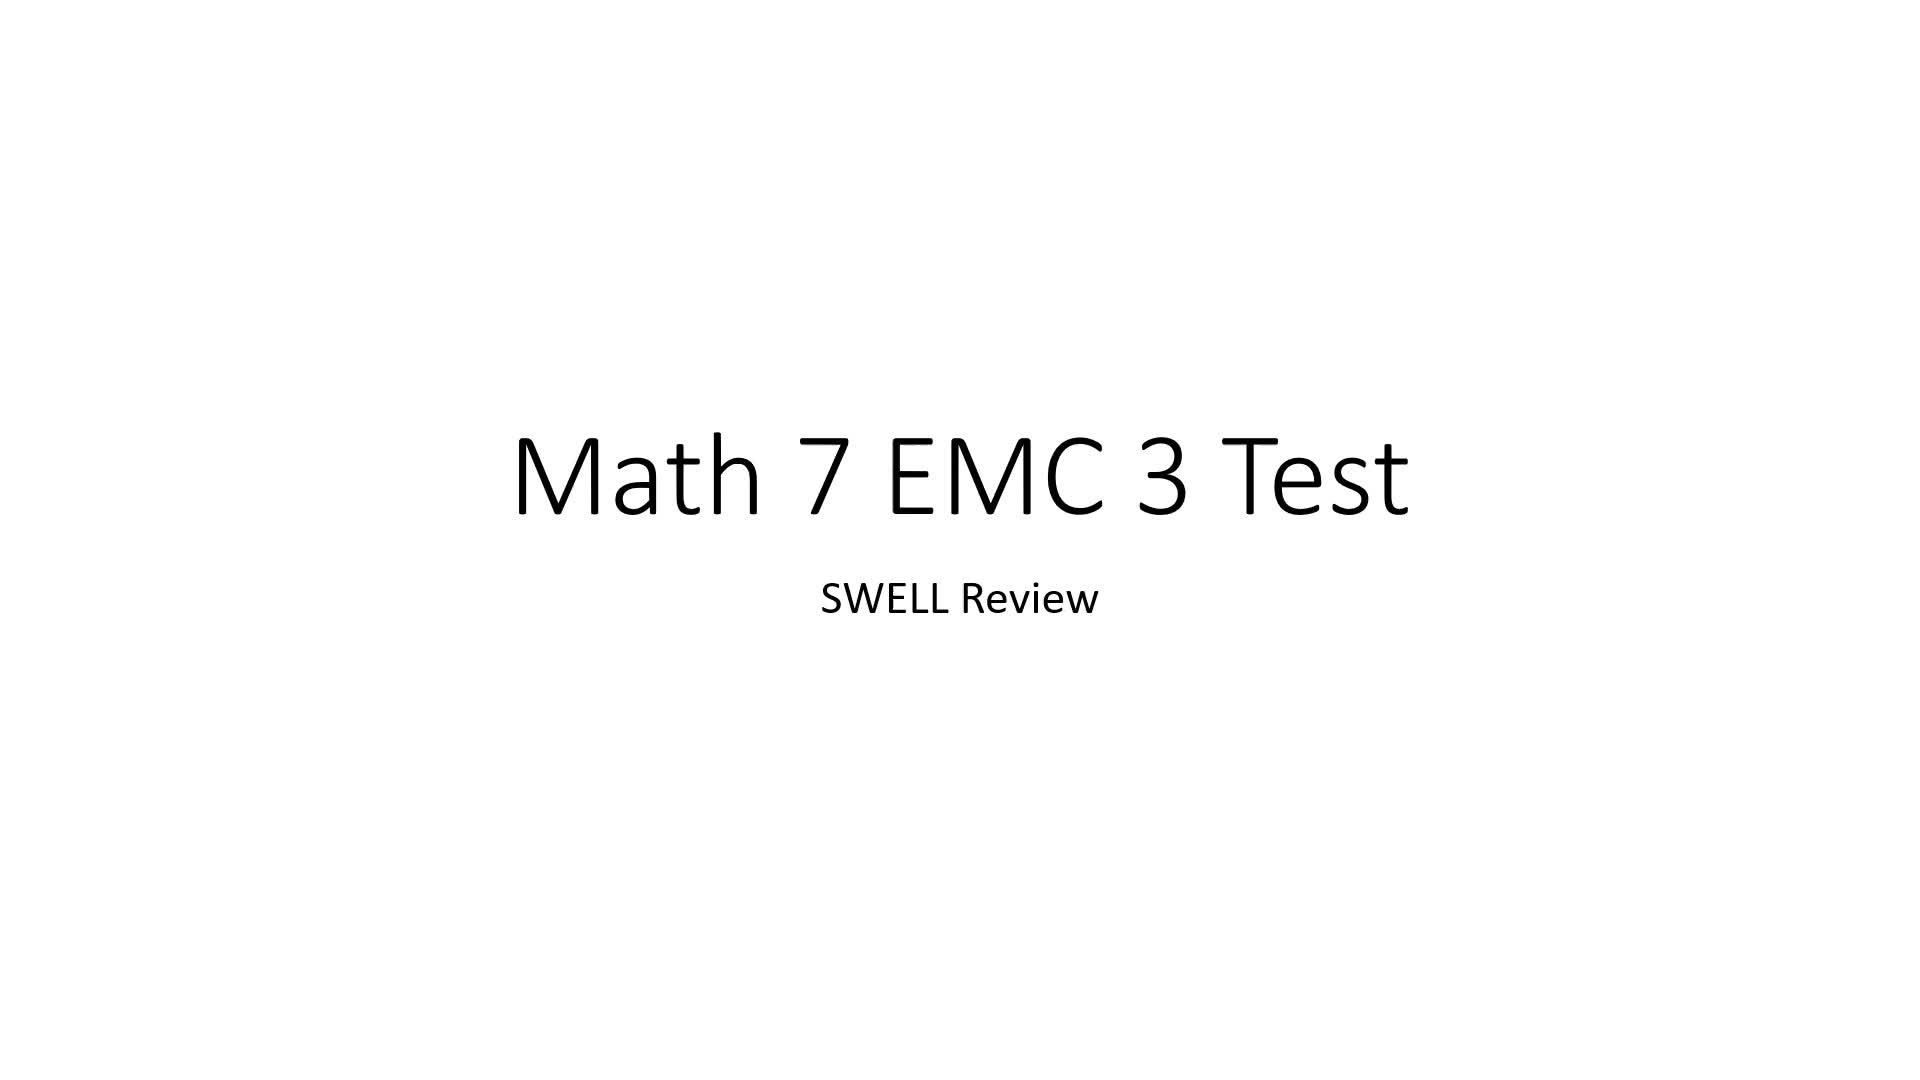 Math 7 EMC 3 SWELL Review